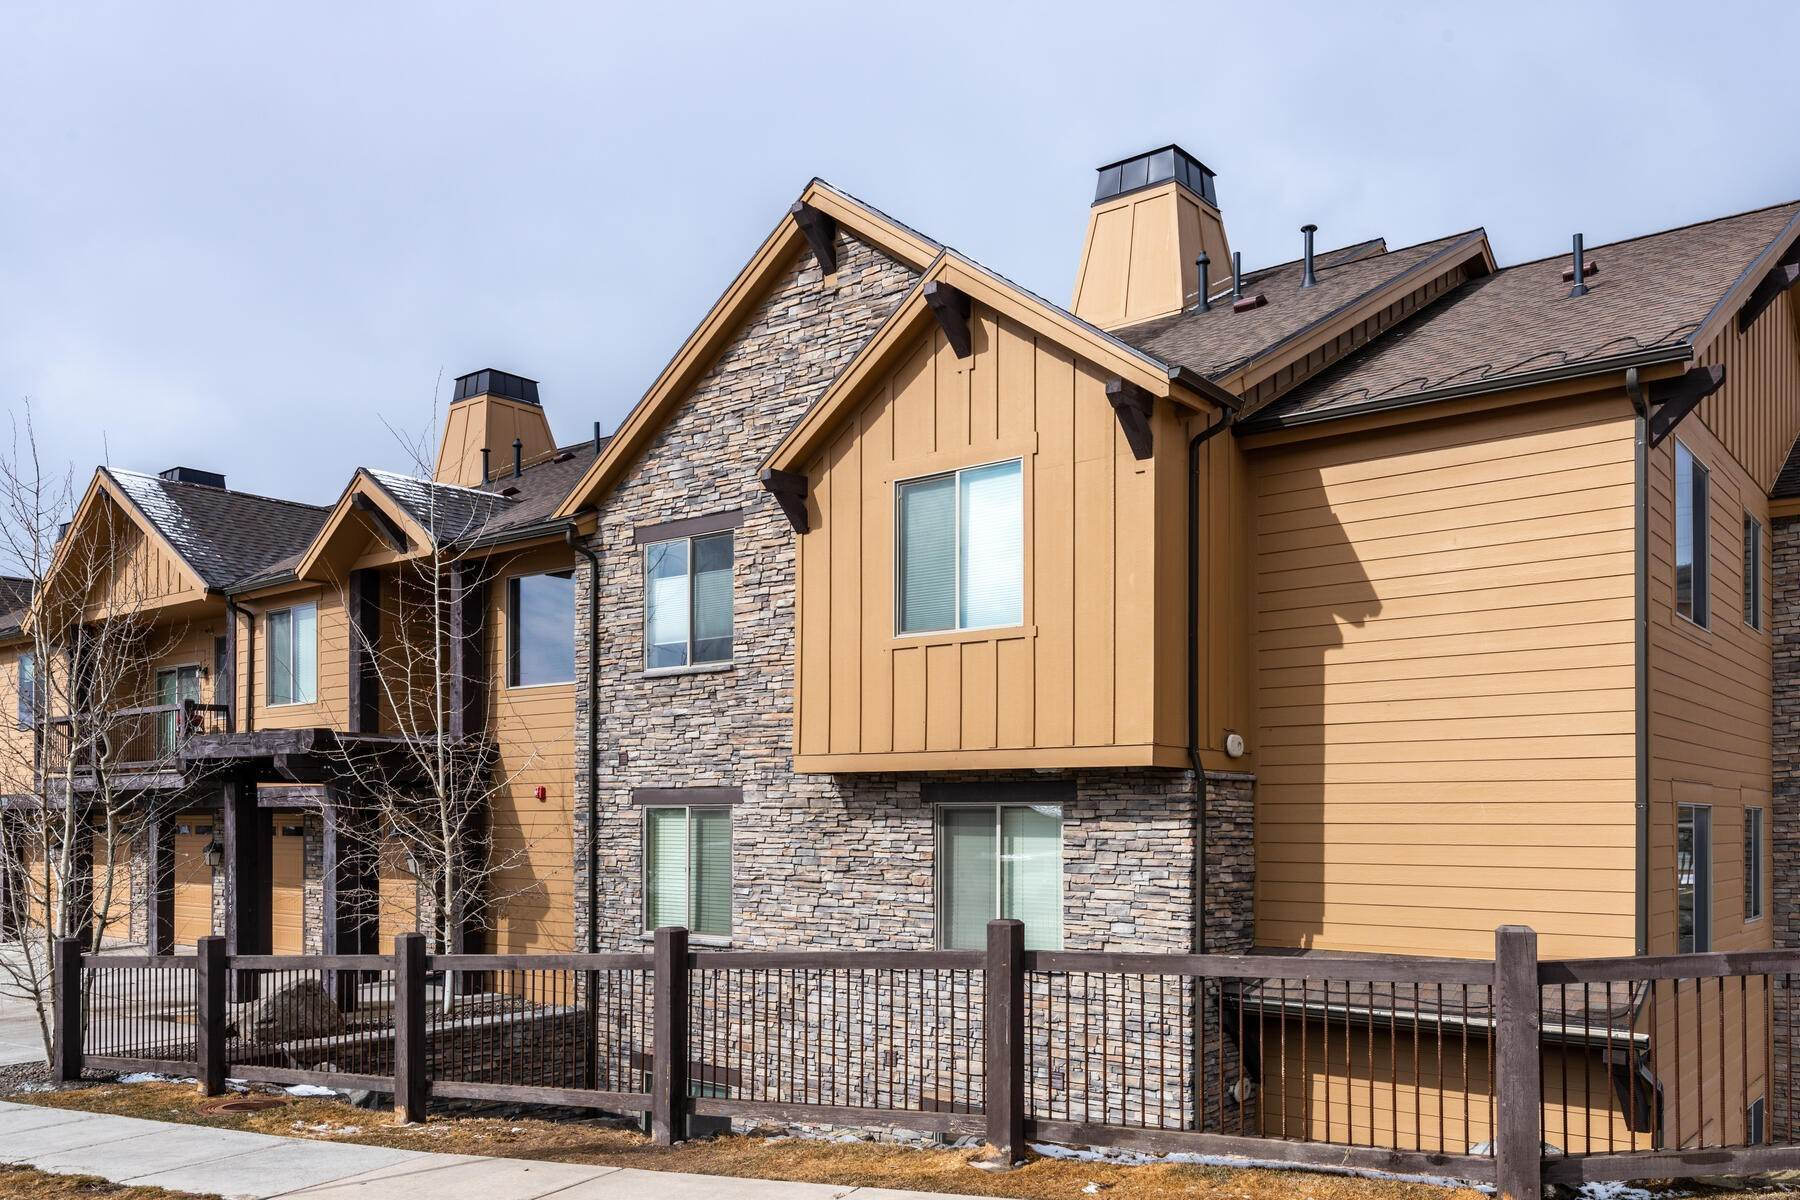 20. Condominiums for Sale at 3 Bedrooms Under $500k Within Minutes of Park City 14345 N Buck Horn Trail E Kamas, Utah 84036 United States